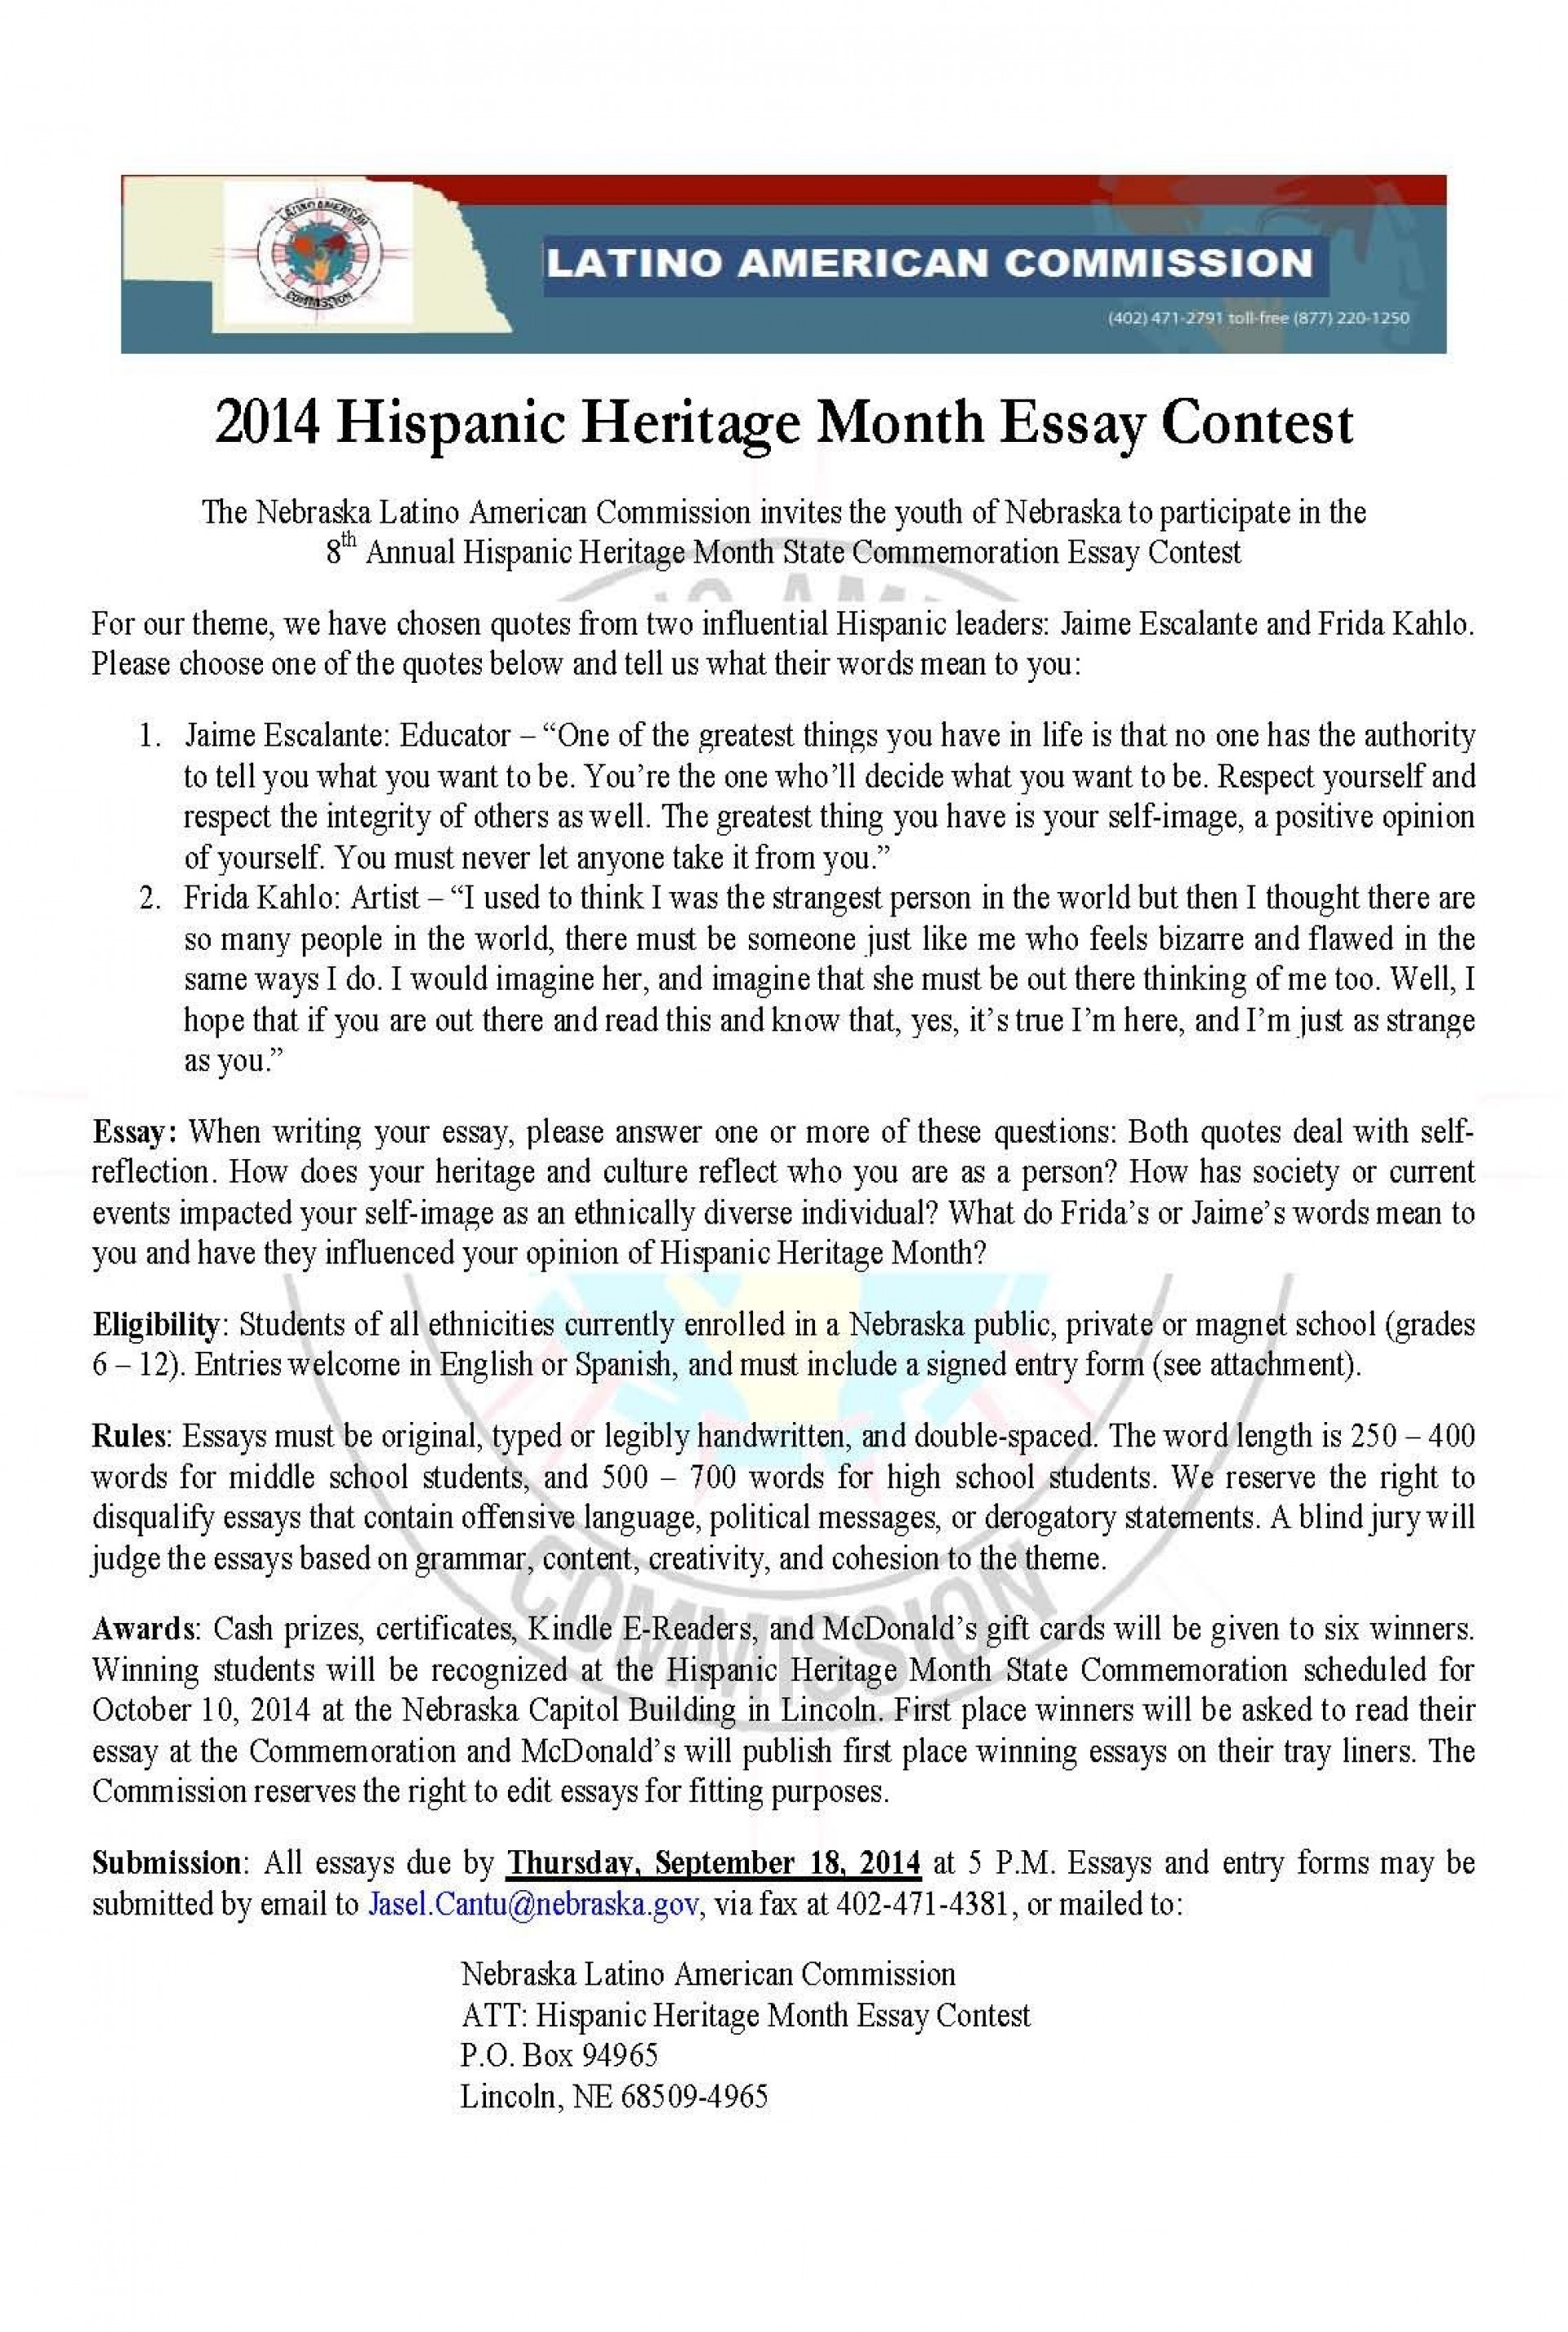 003 Essay Contests Imposing 2014 Maryknoll Contest Winners 1920